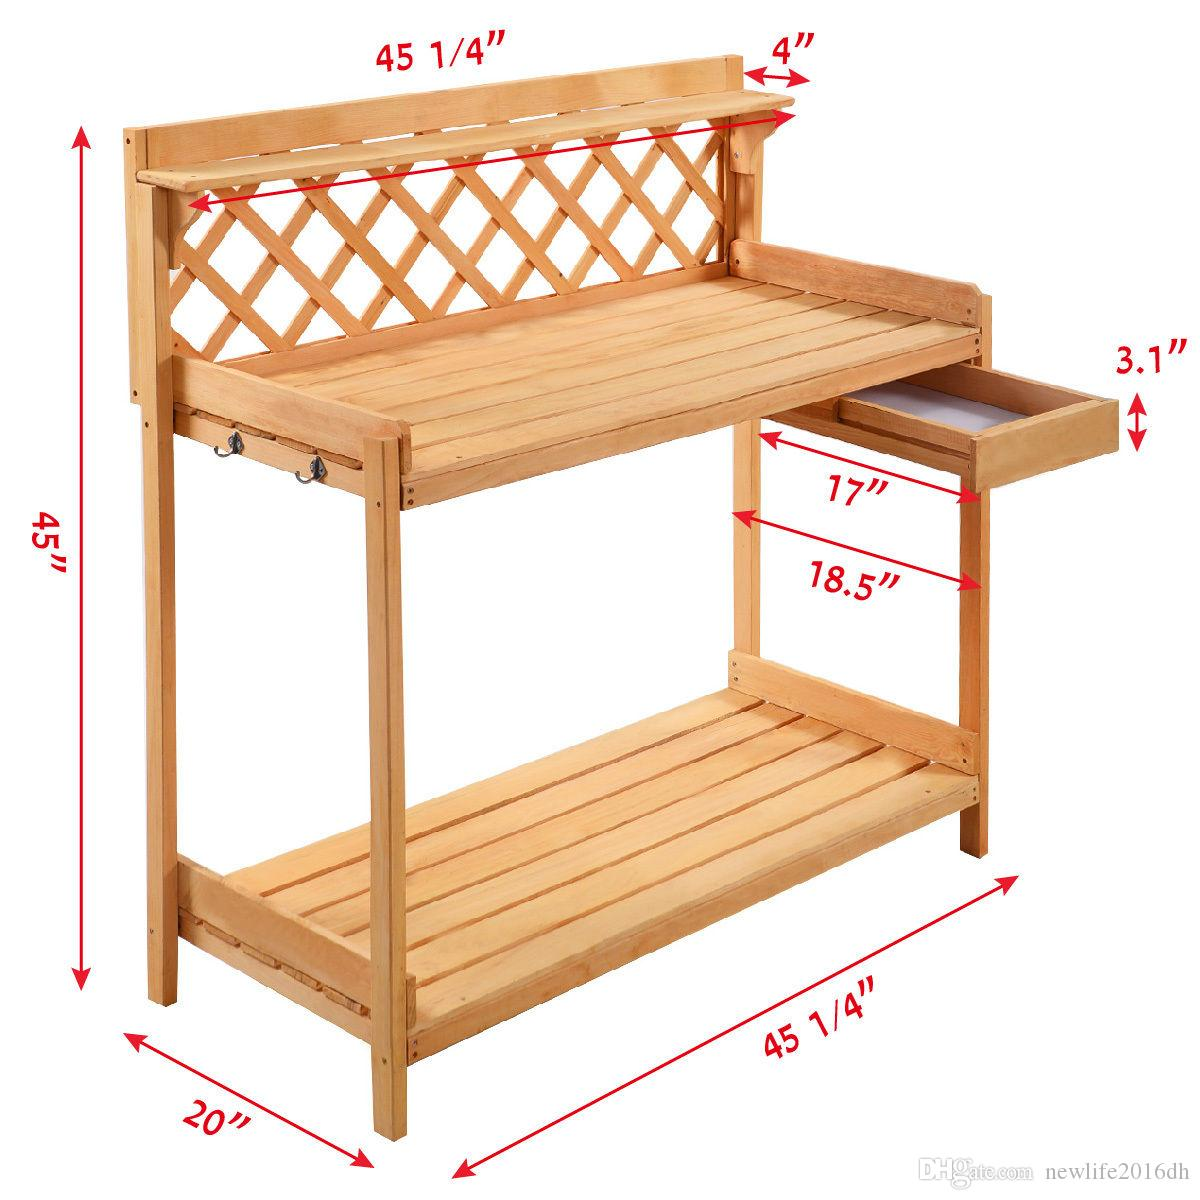 Stupendous 2019 Potting Bench Outdoor Garden Work Bench Station Planting Solid Wood Construction From Newlife2016Dh 59 03 Dhgate Com Andrewgaddart Wooden Chair Designs For Living Room Andrewgaddartcom